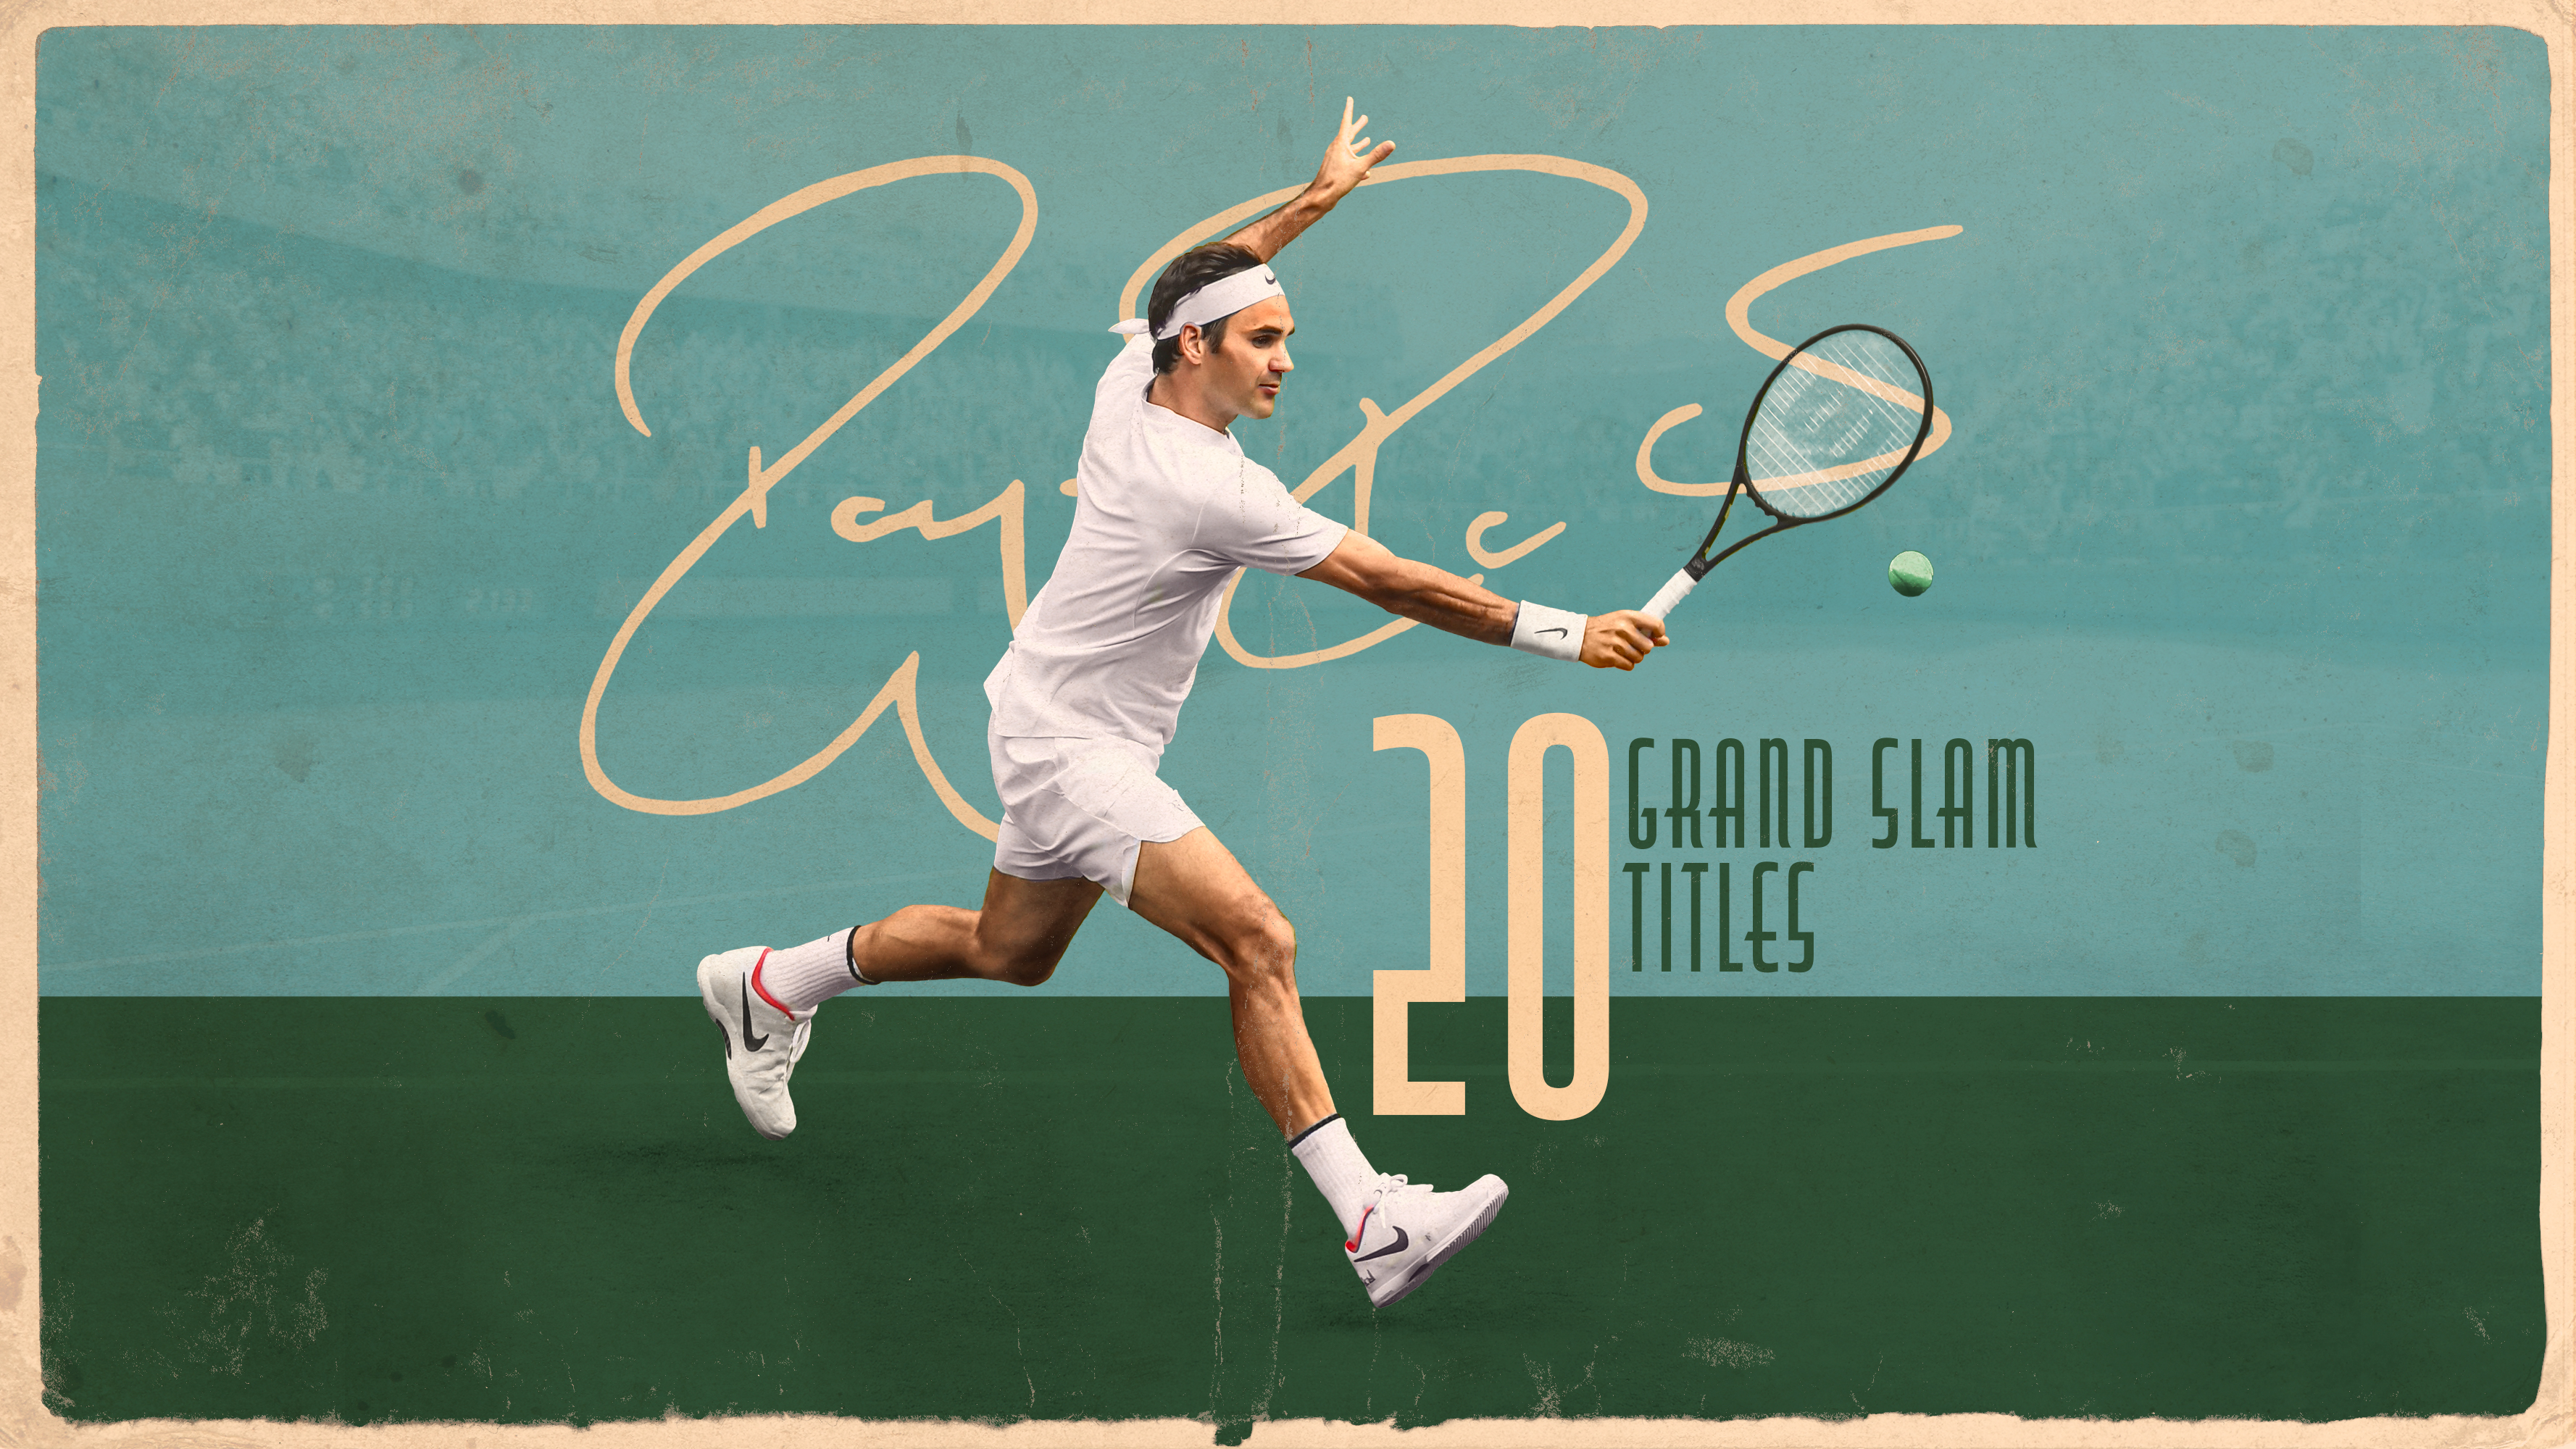 Roger Federer Desktop Wallpaper tennis 3555x2000